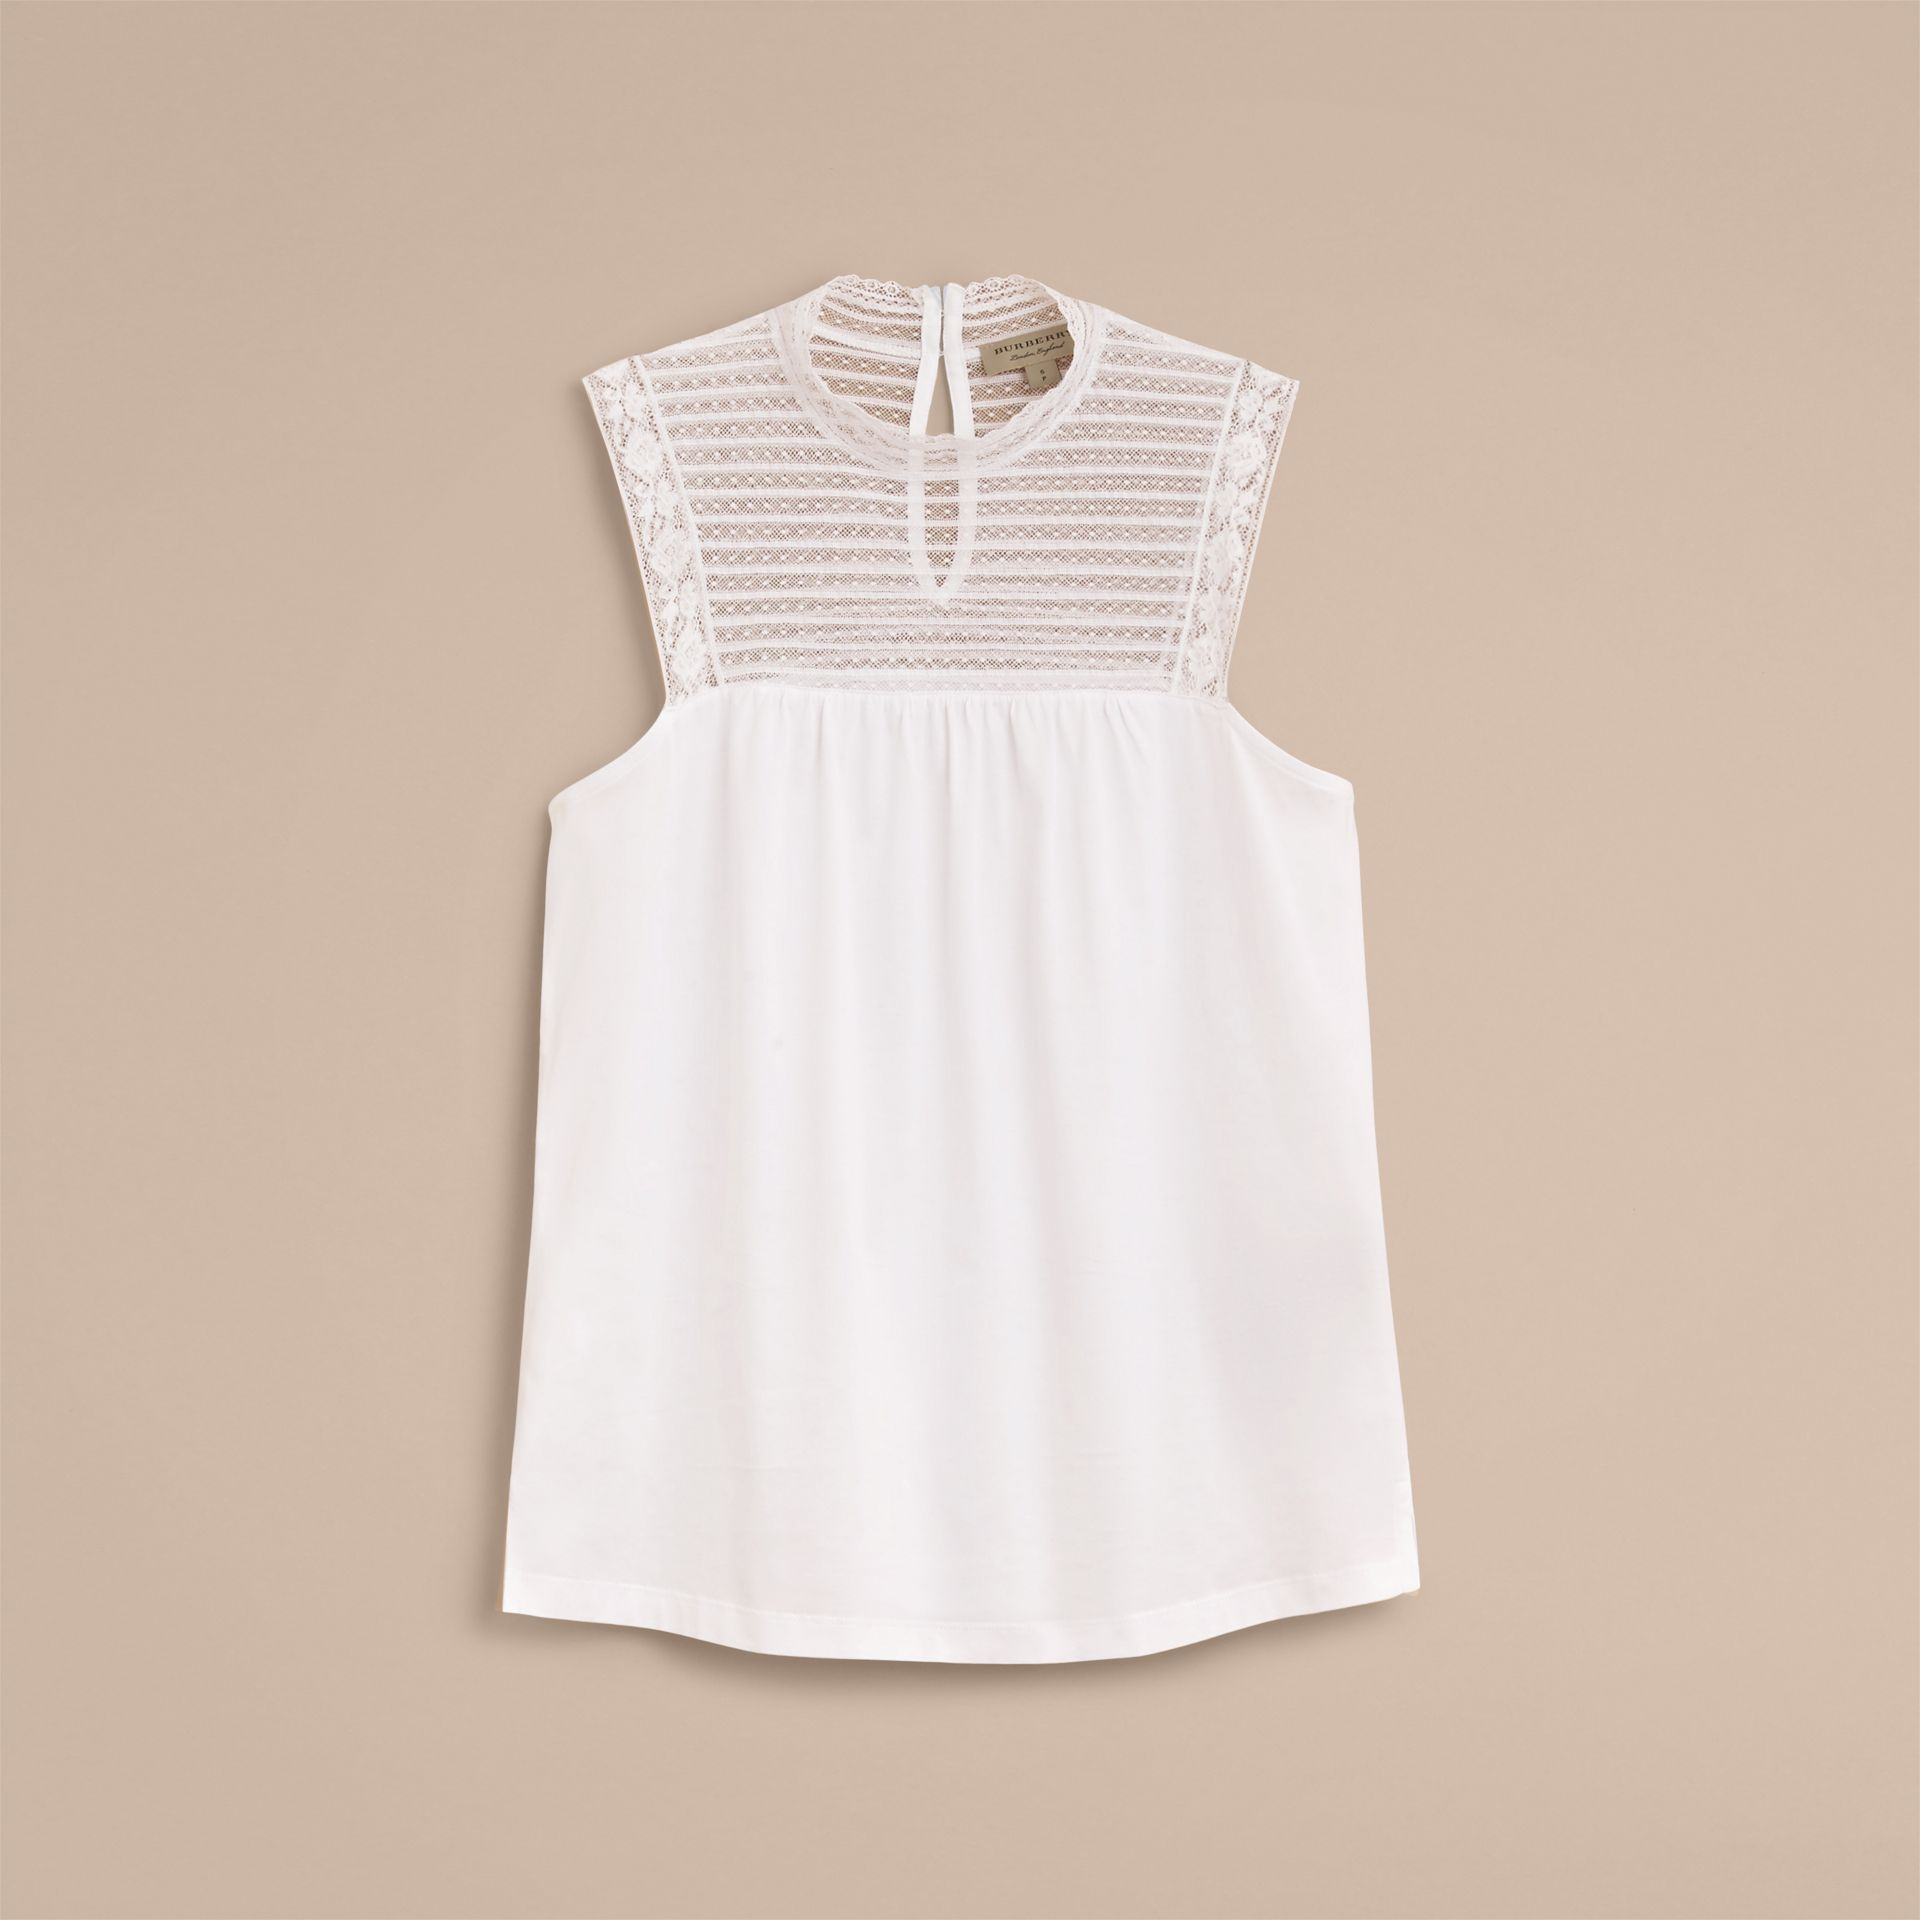 Sleeveless Lace Panel Cotton Top in White - Women | Burberry Canada - gallery image 4